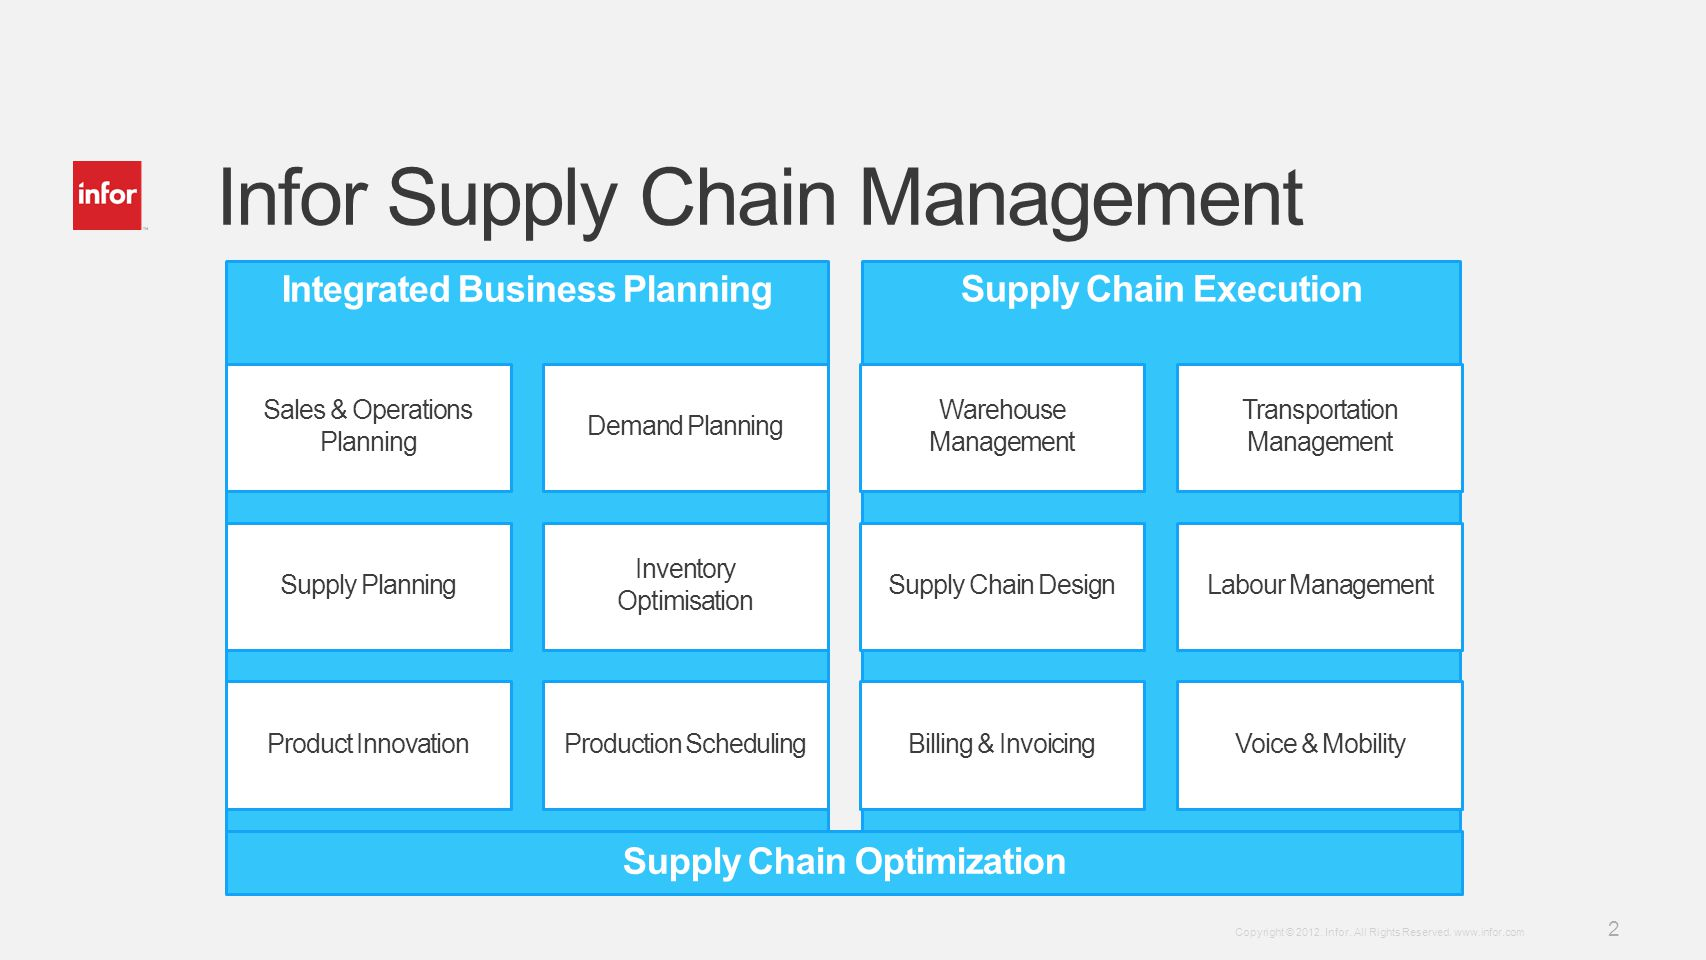 Infor Supply Chain Management